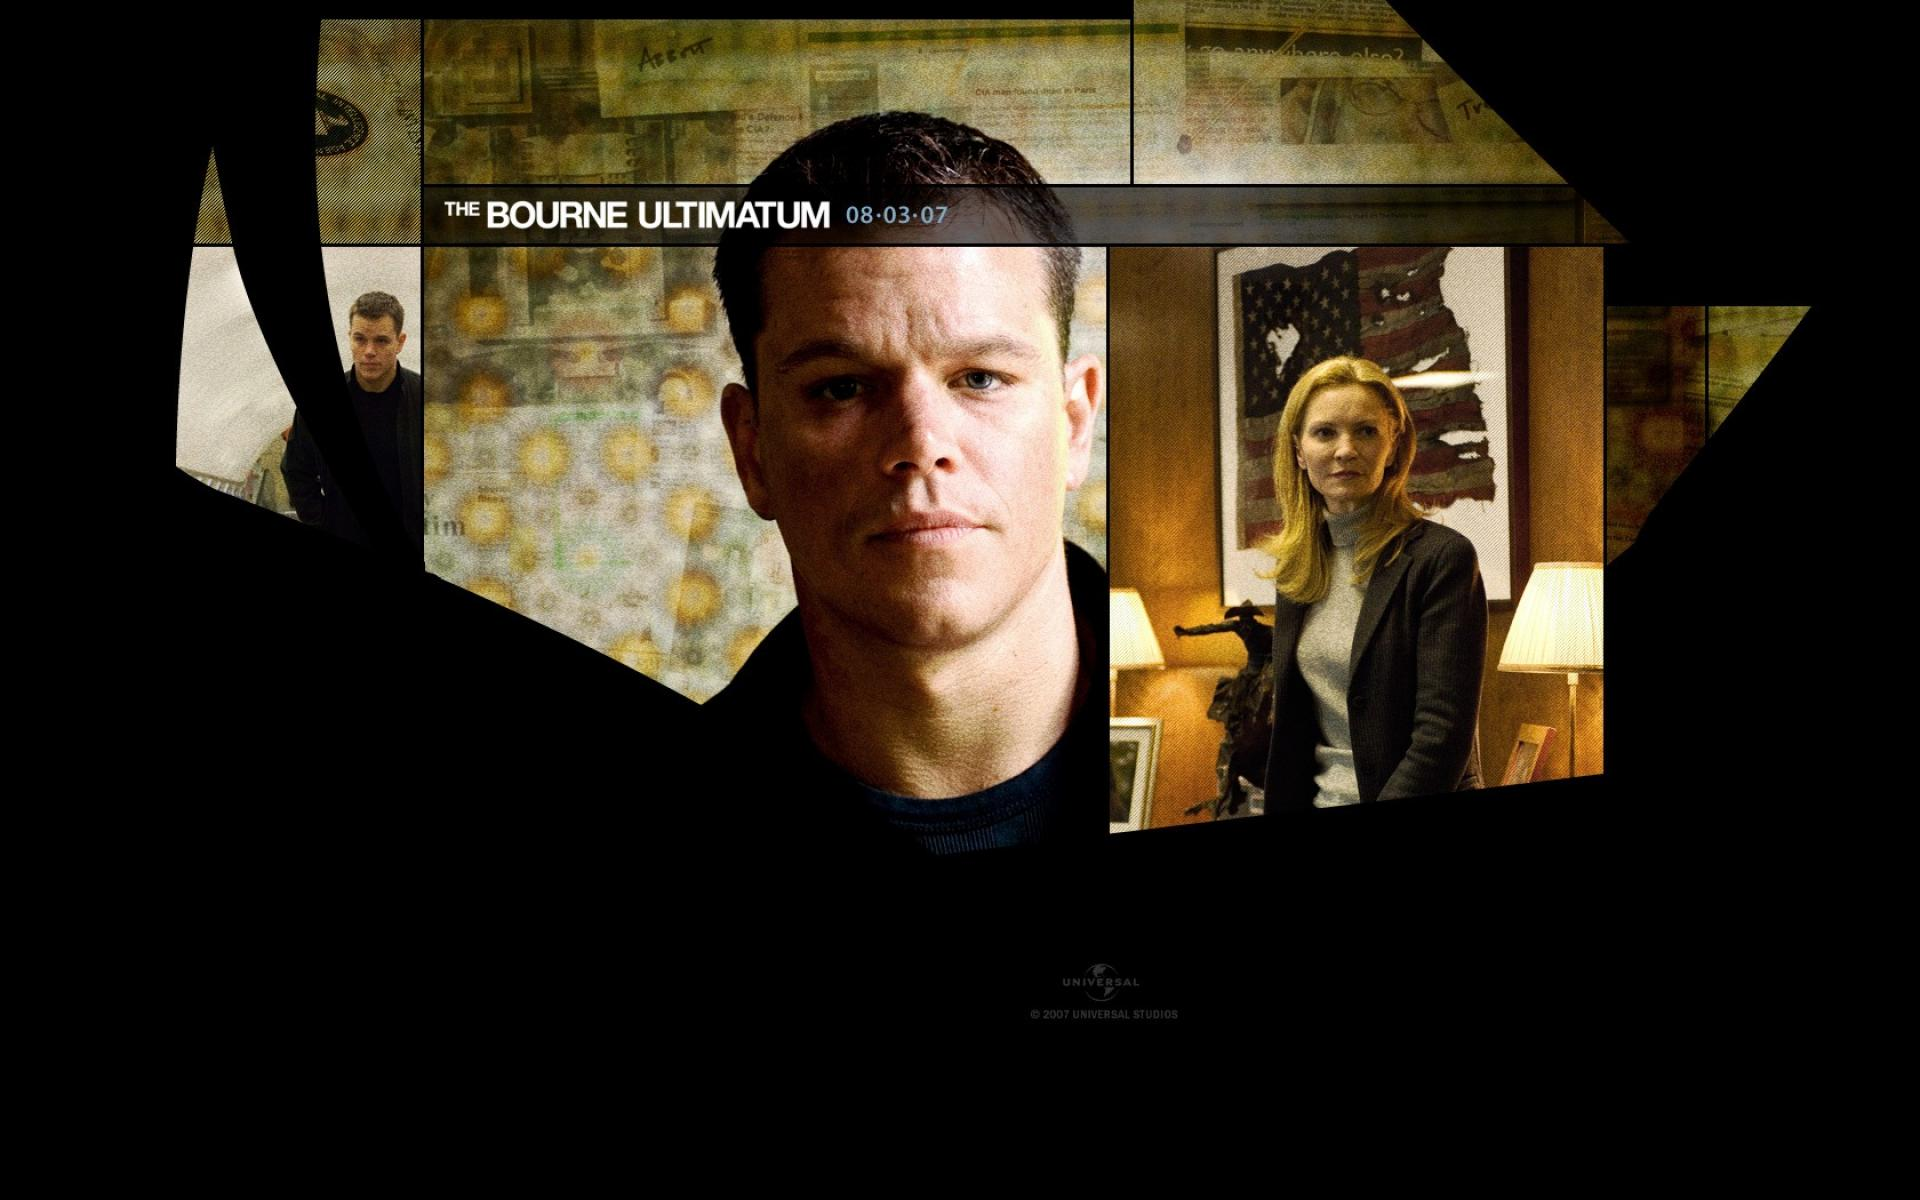 Download hd 1920x1200 Matt Damon PC background ID:110785 for free